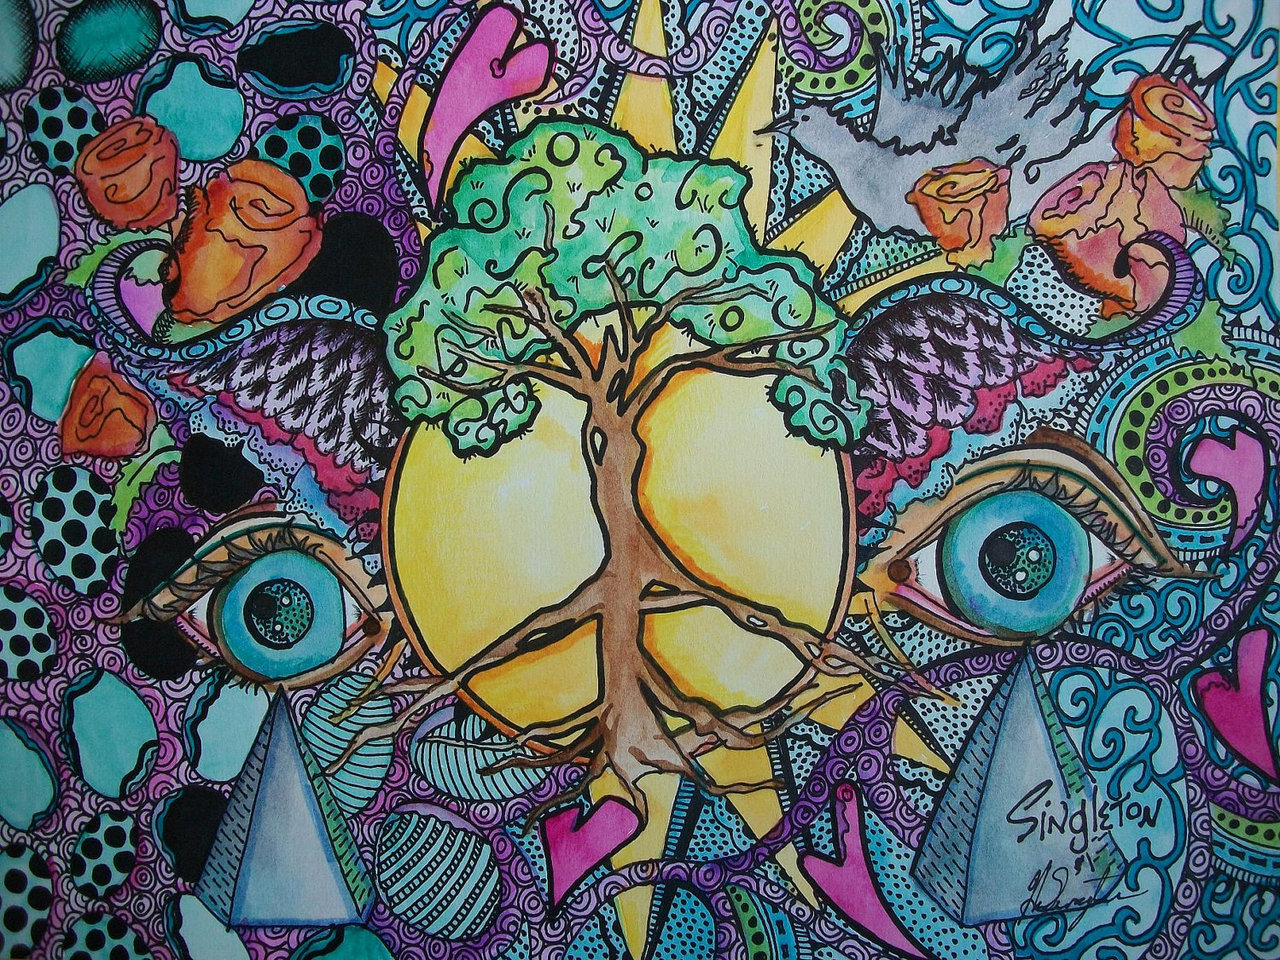 Trippy hippie wallpaper wallpapersafari - Trippy backgrounds tumblr ...